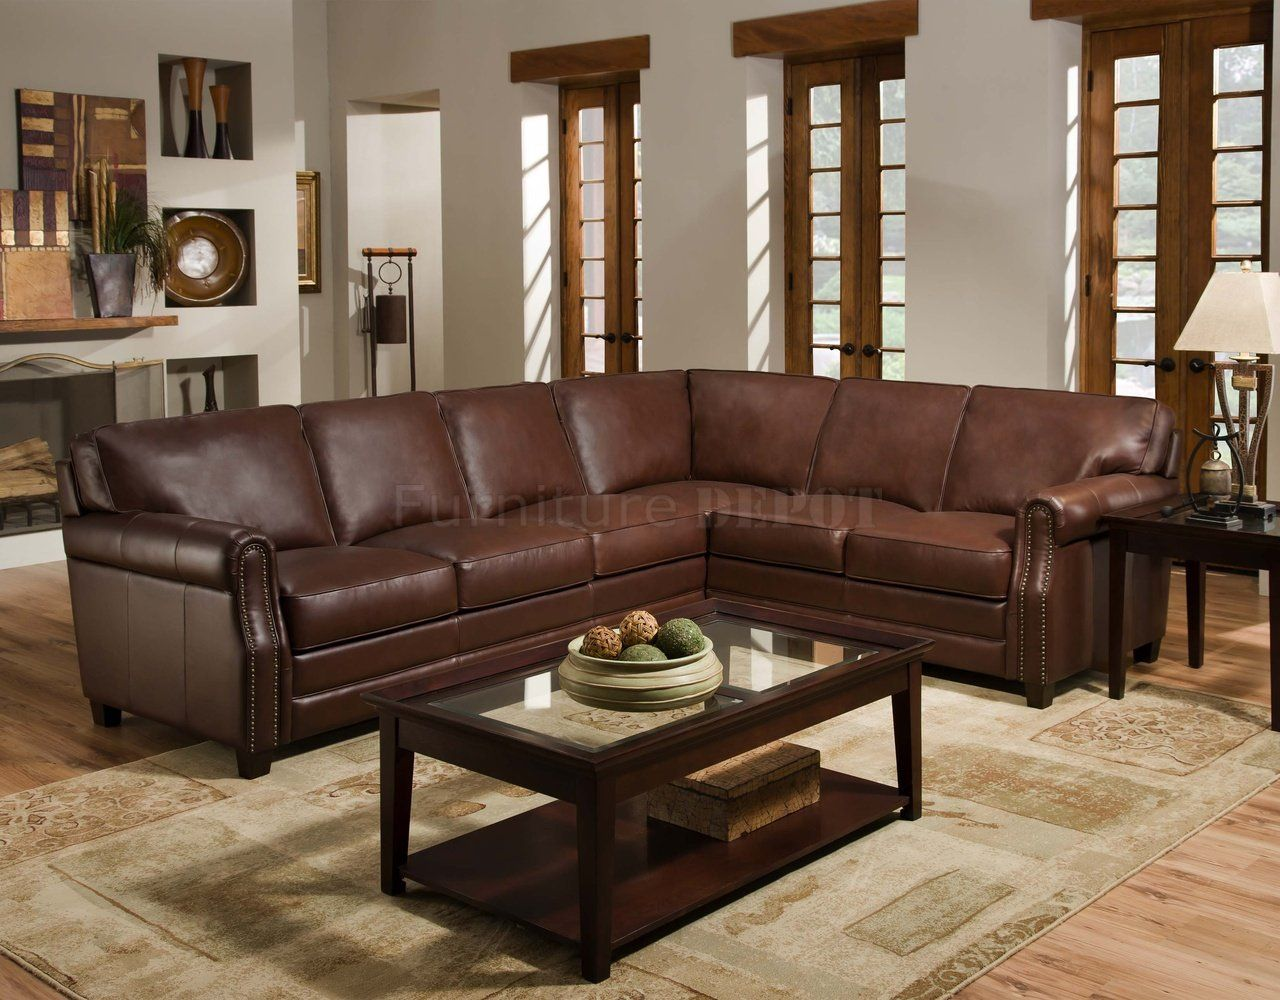 Image For Leather Sectional Sofas Wallpaper High Quality Resolution #g7kci